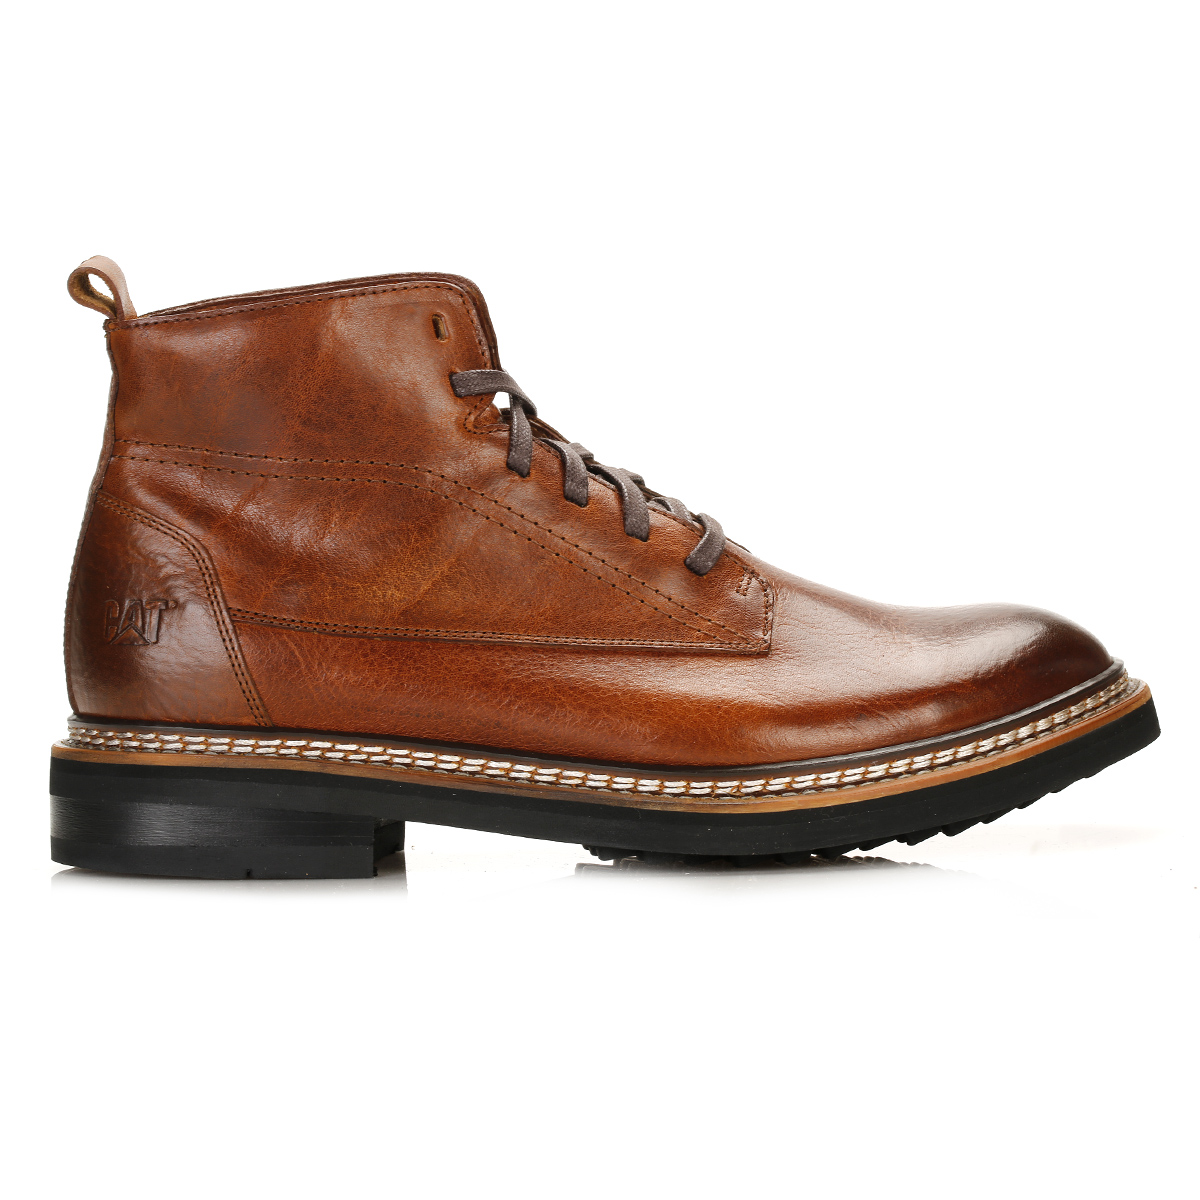 CAT Caterpillar Mens Brown Leather Chukka Boots, Goodyear ...